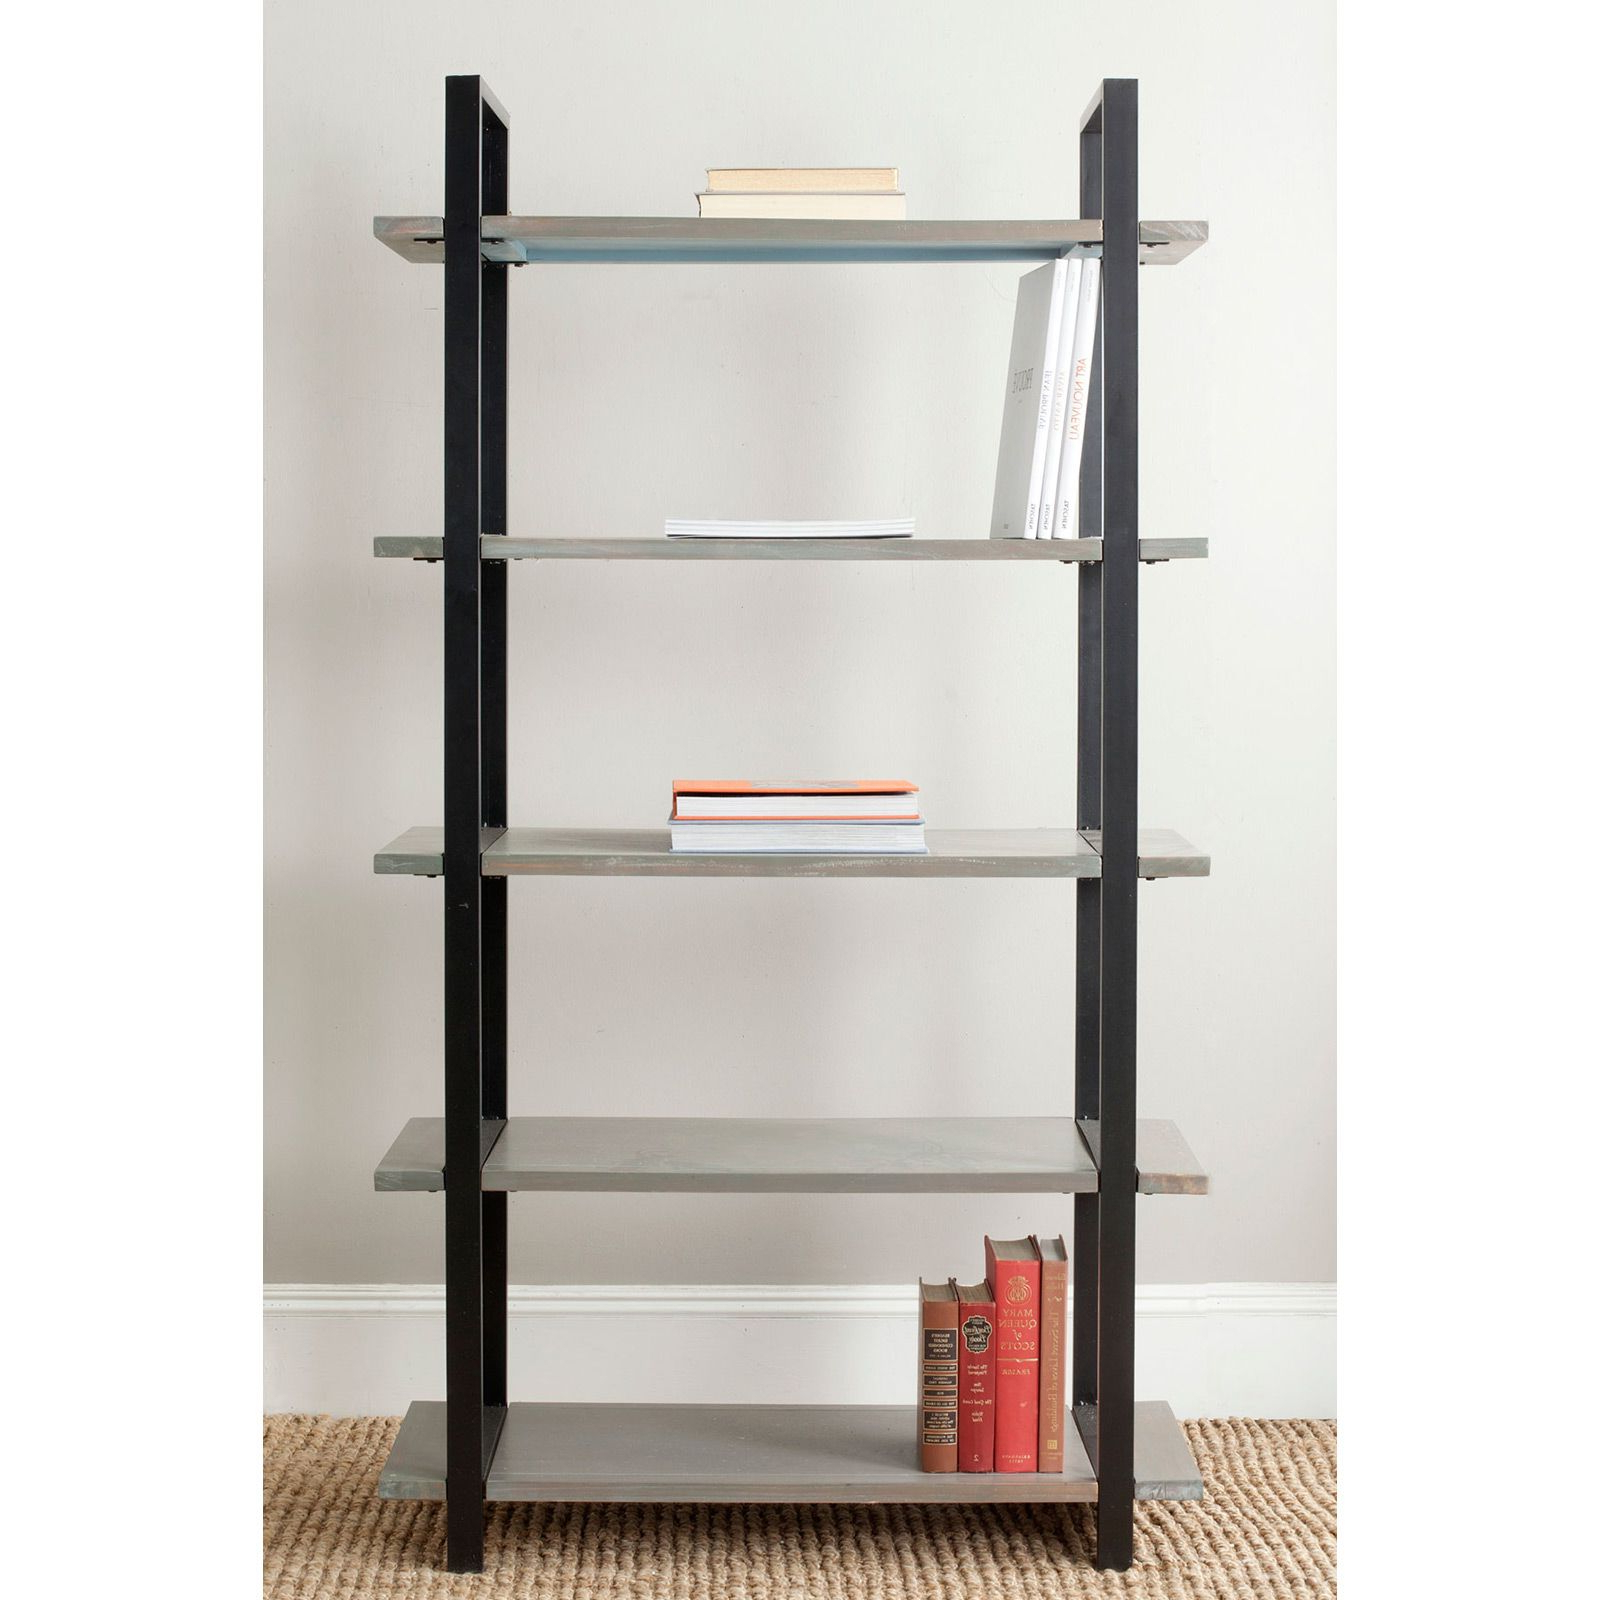 Gladstone Etagere Bookcases Regarding Current Furniture And Décor For The Modern Lifestyle (View 13 of 20)